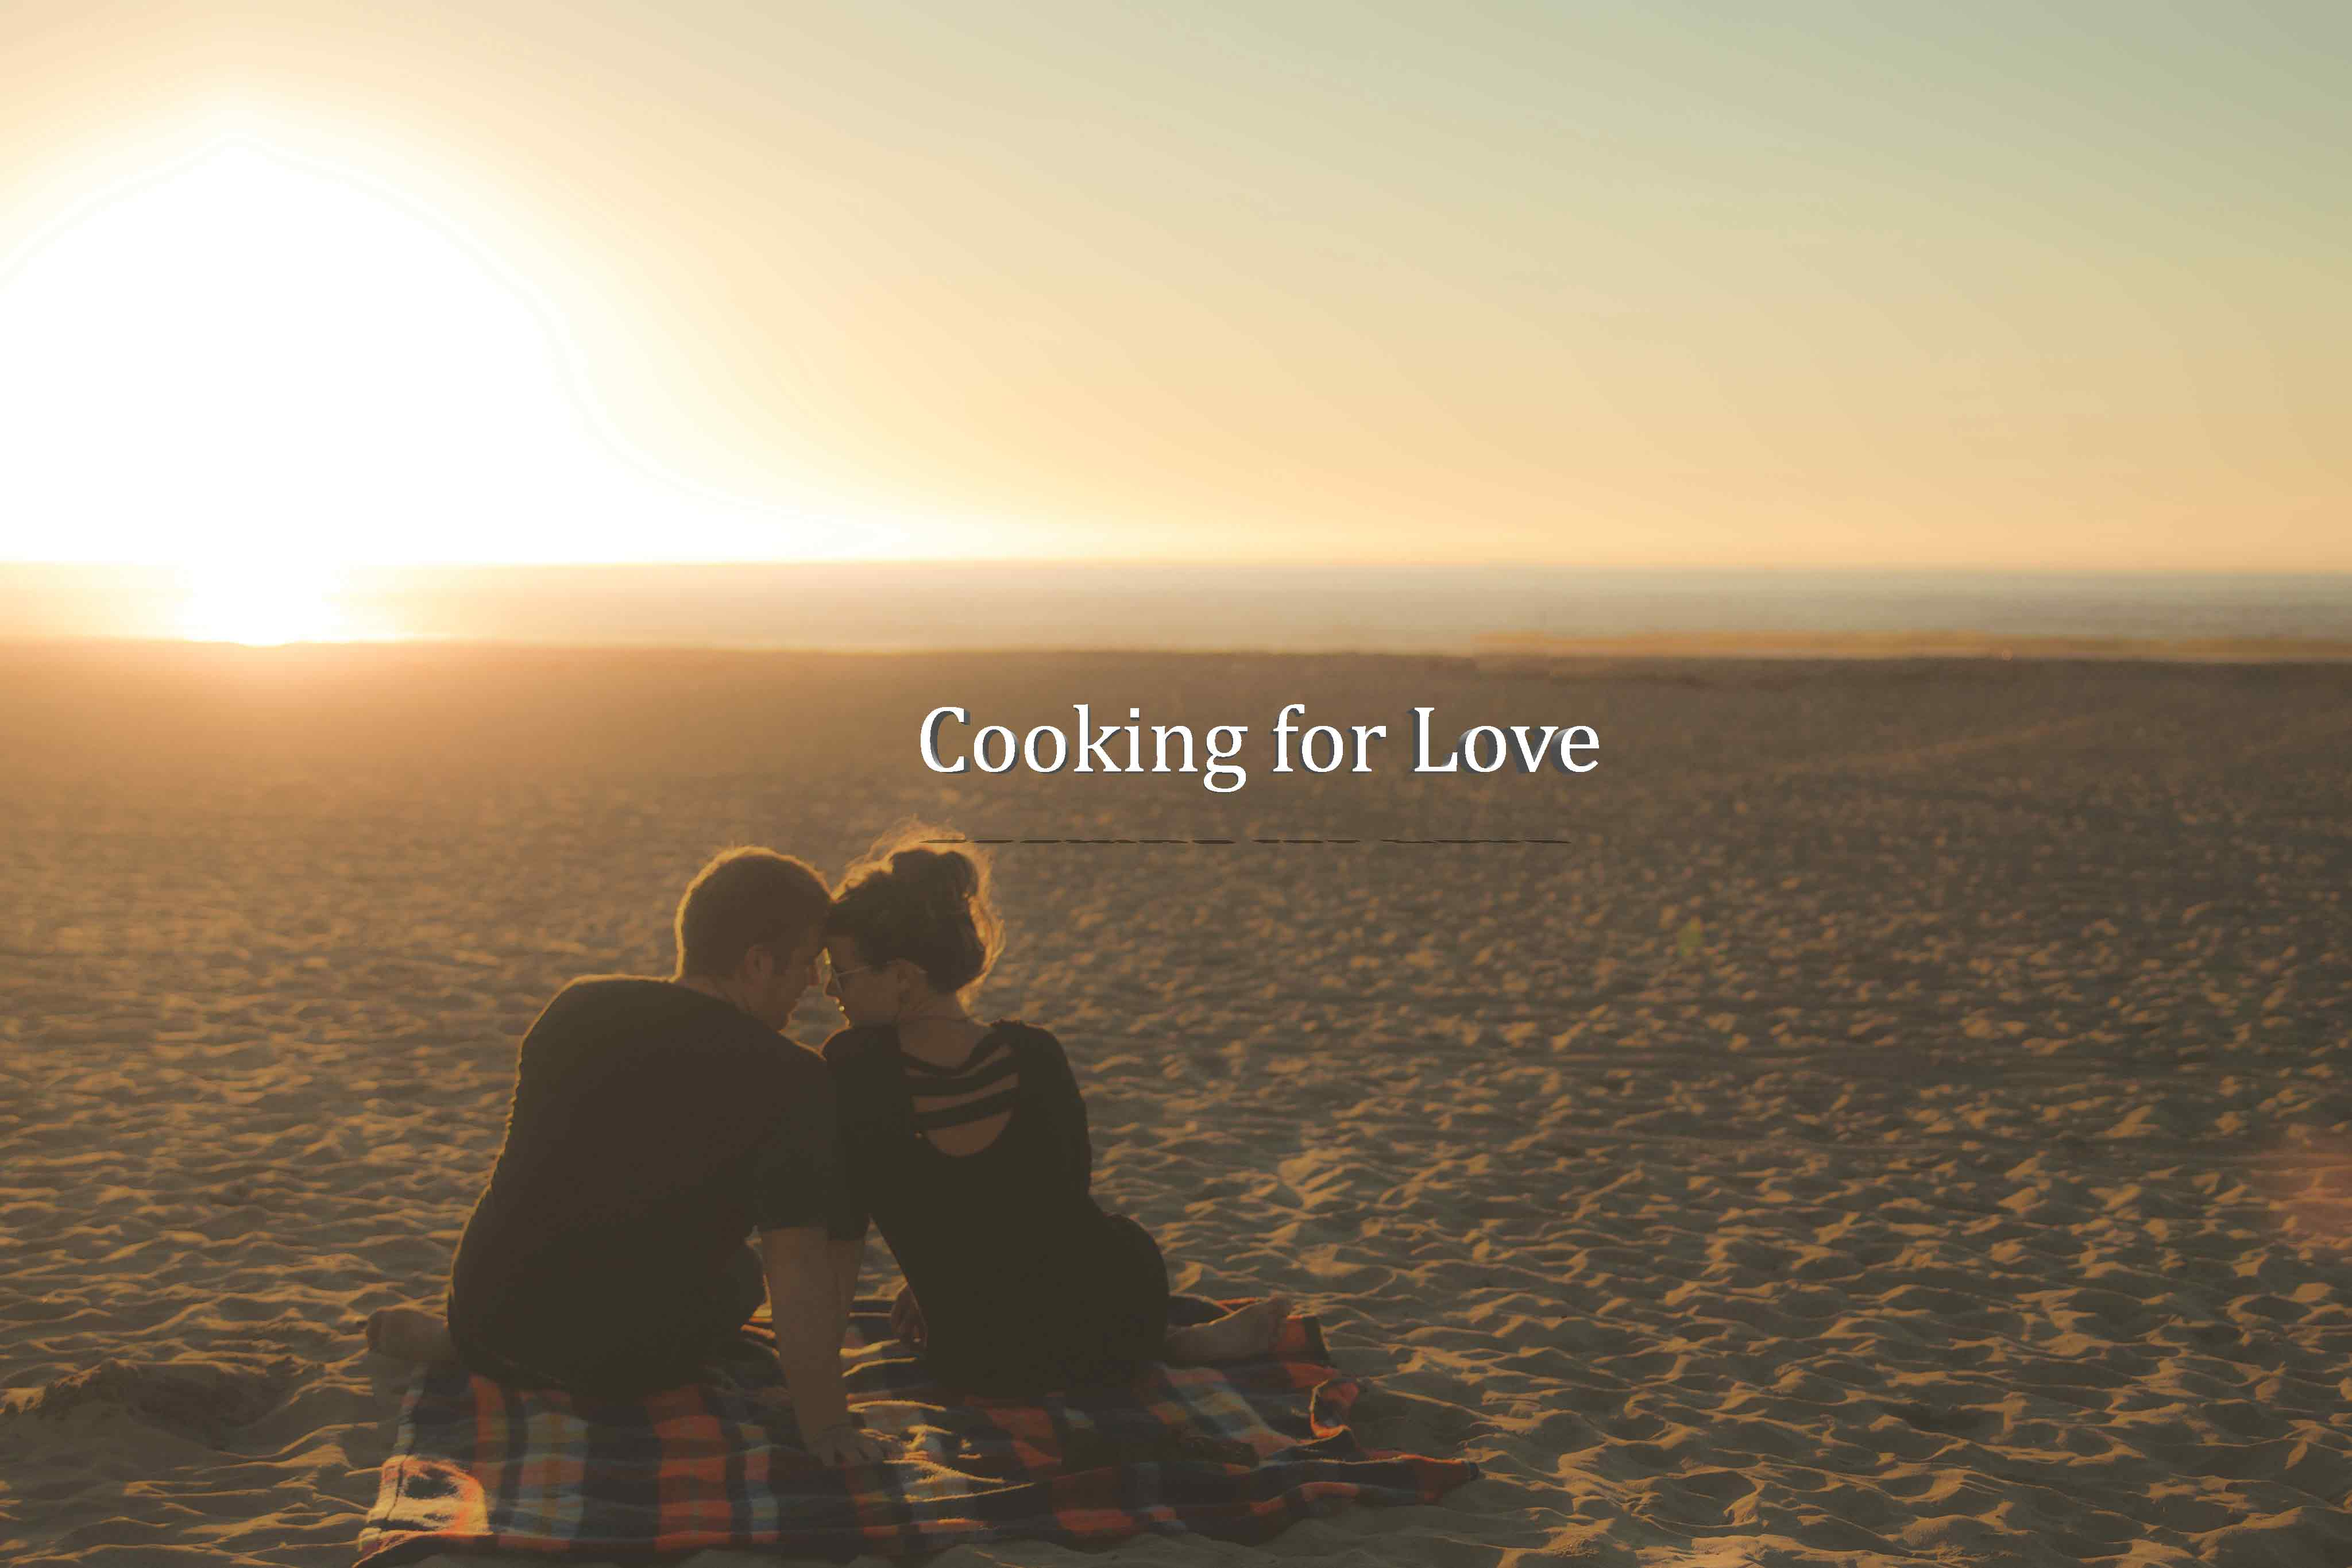 Cooking for Love